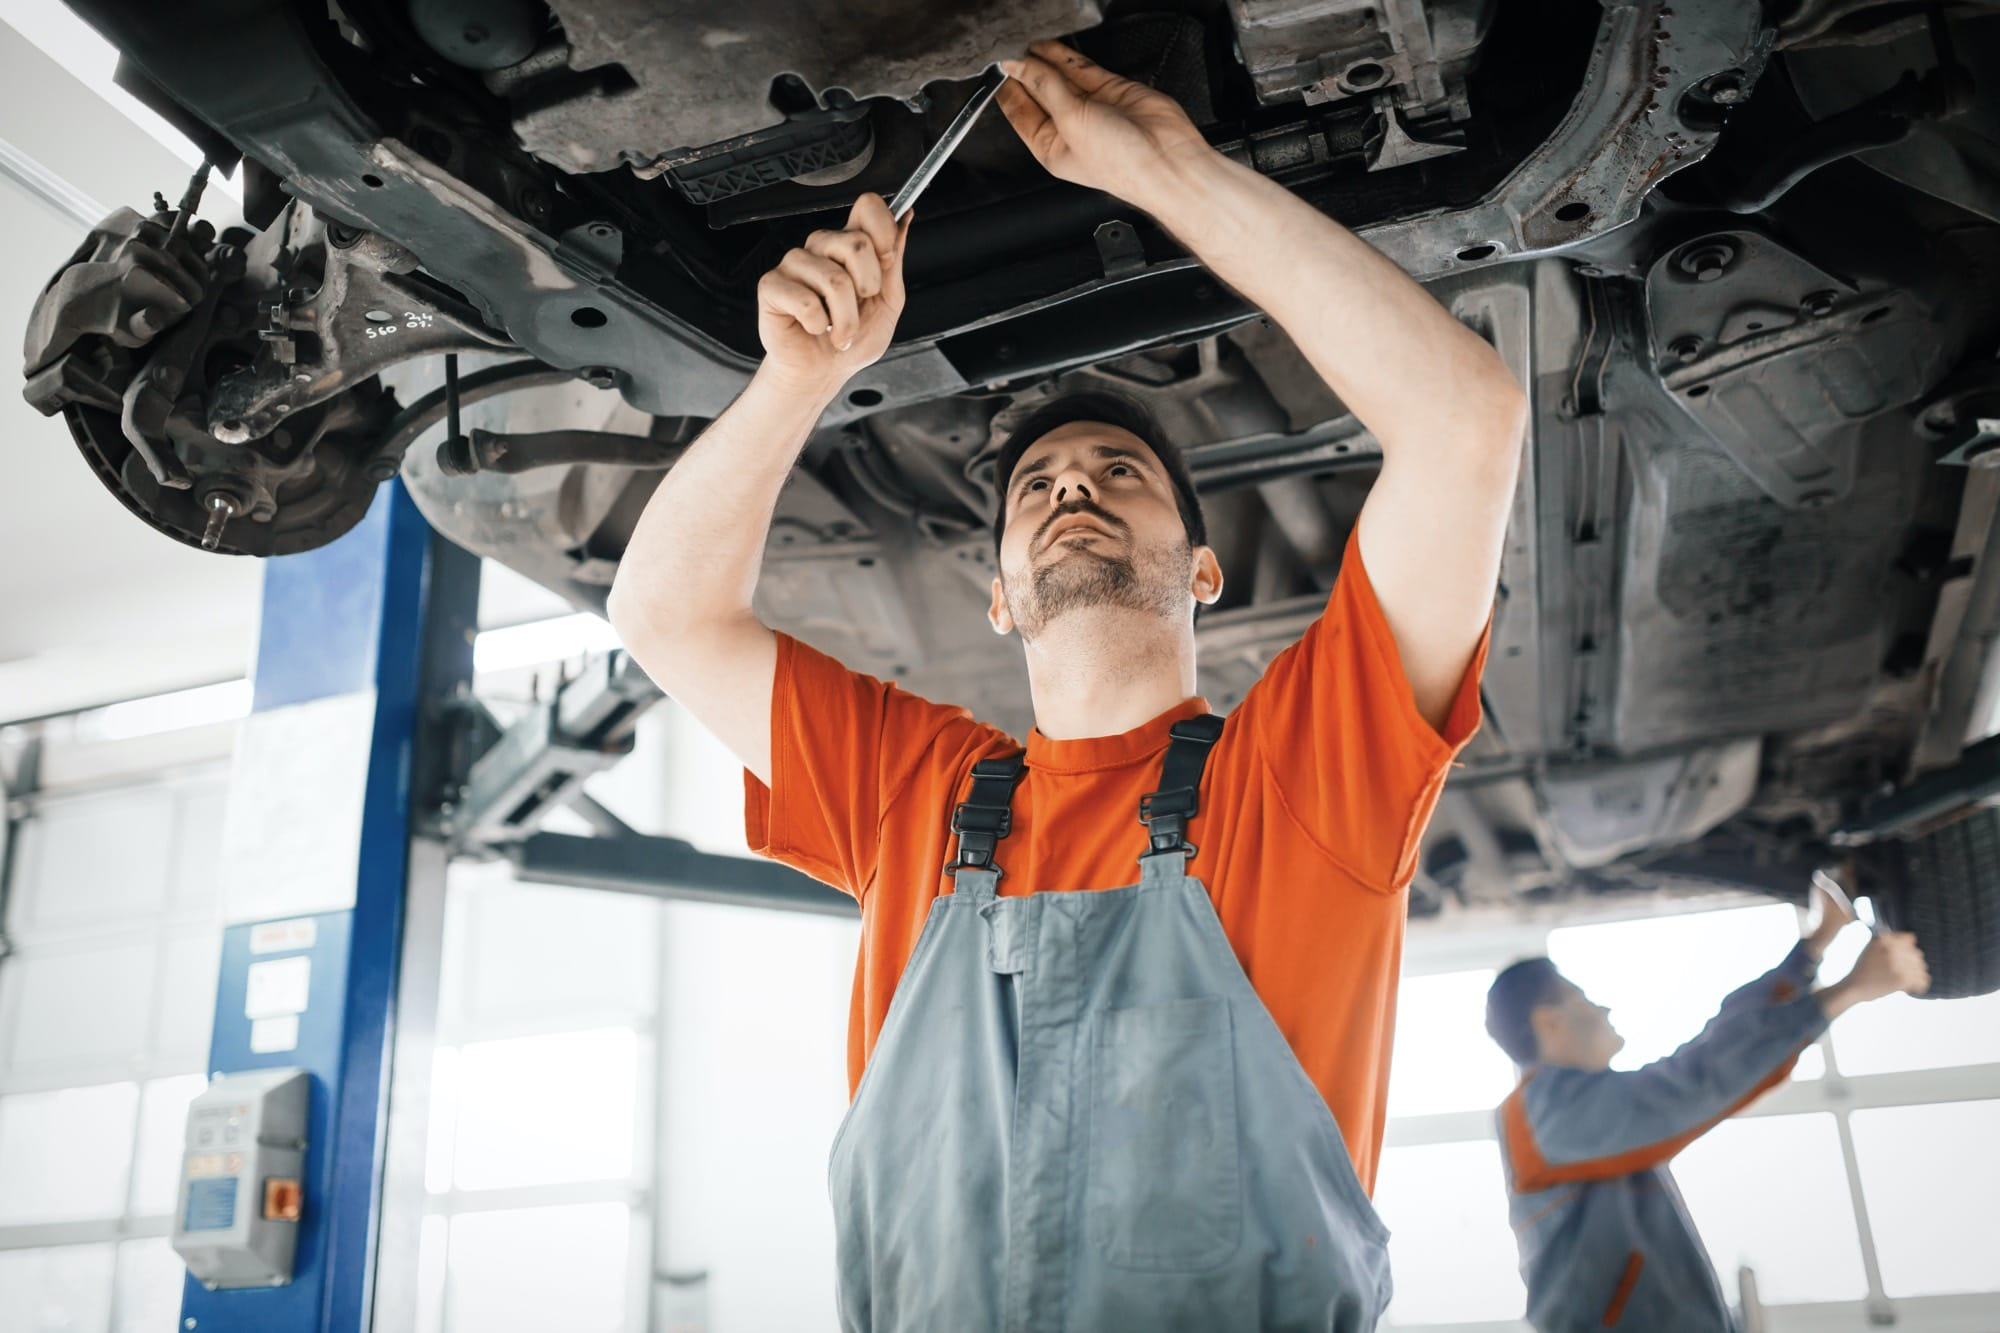 car-mechanics-working-and-maintaining-car